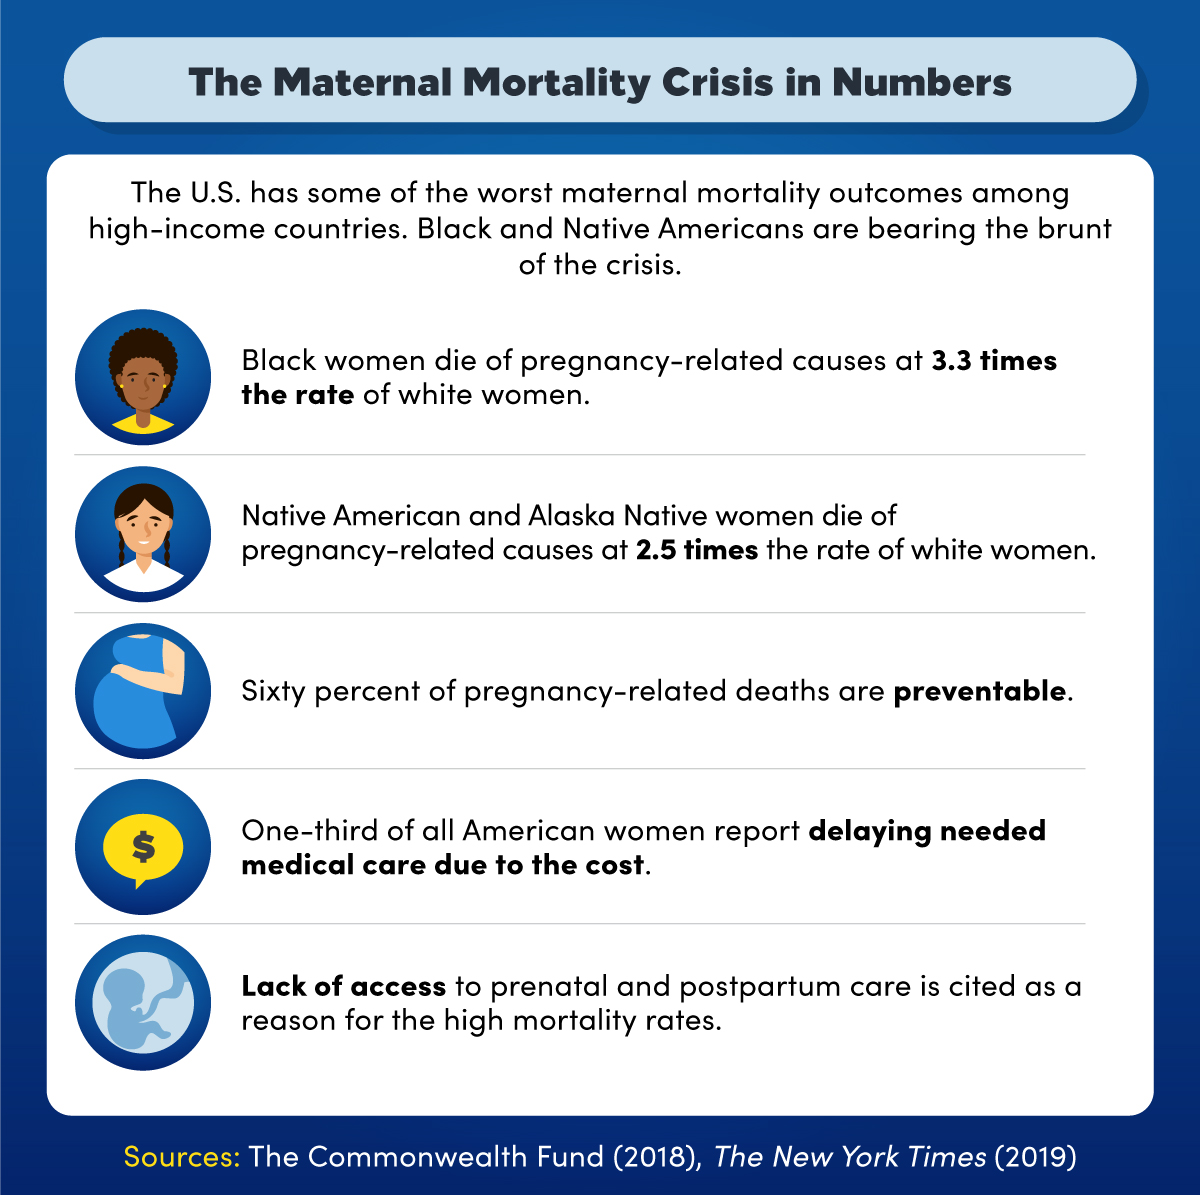 The U.S. has some of the worst maternal mortality outcomes among high-income countries.